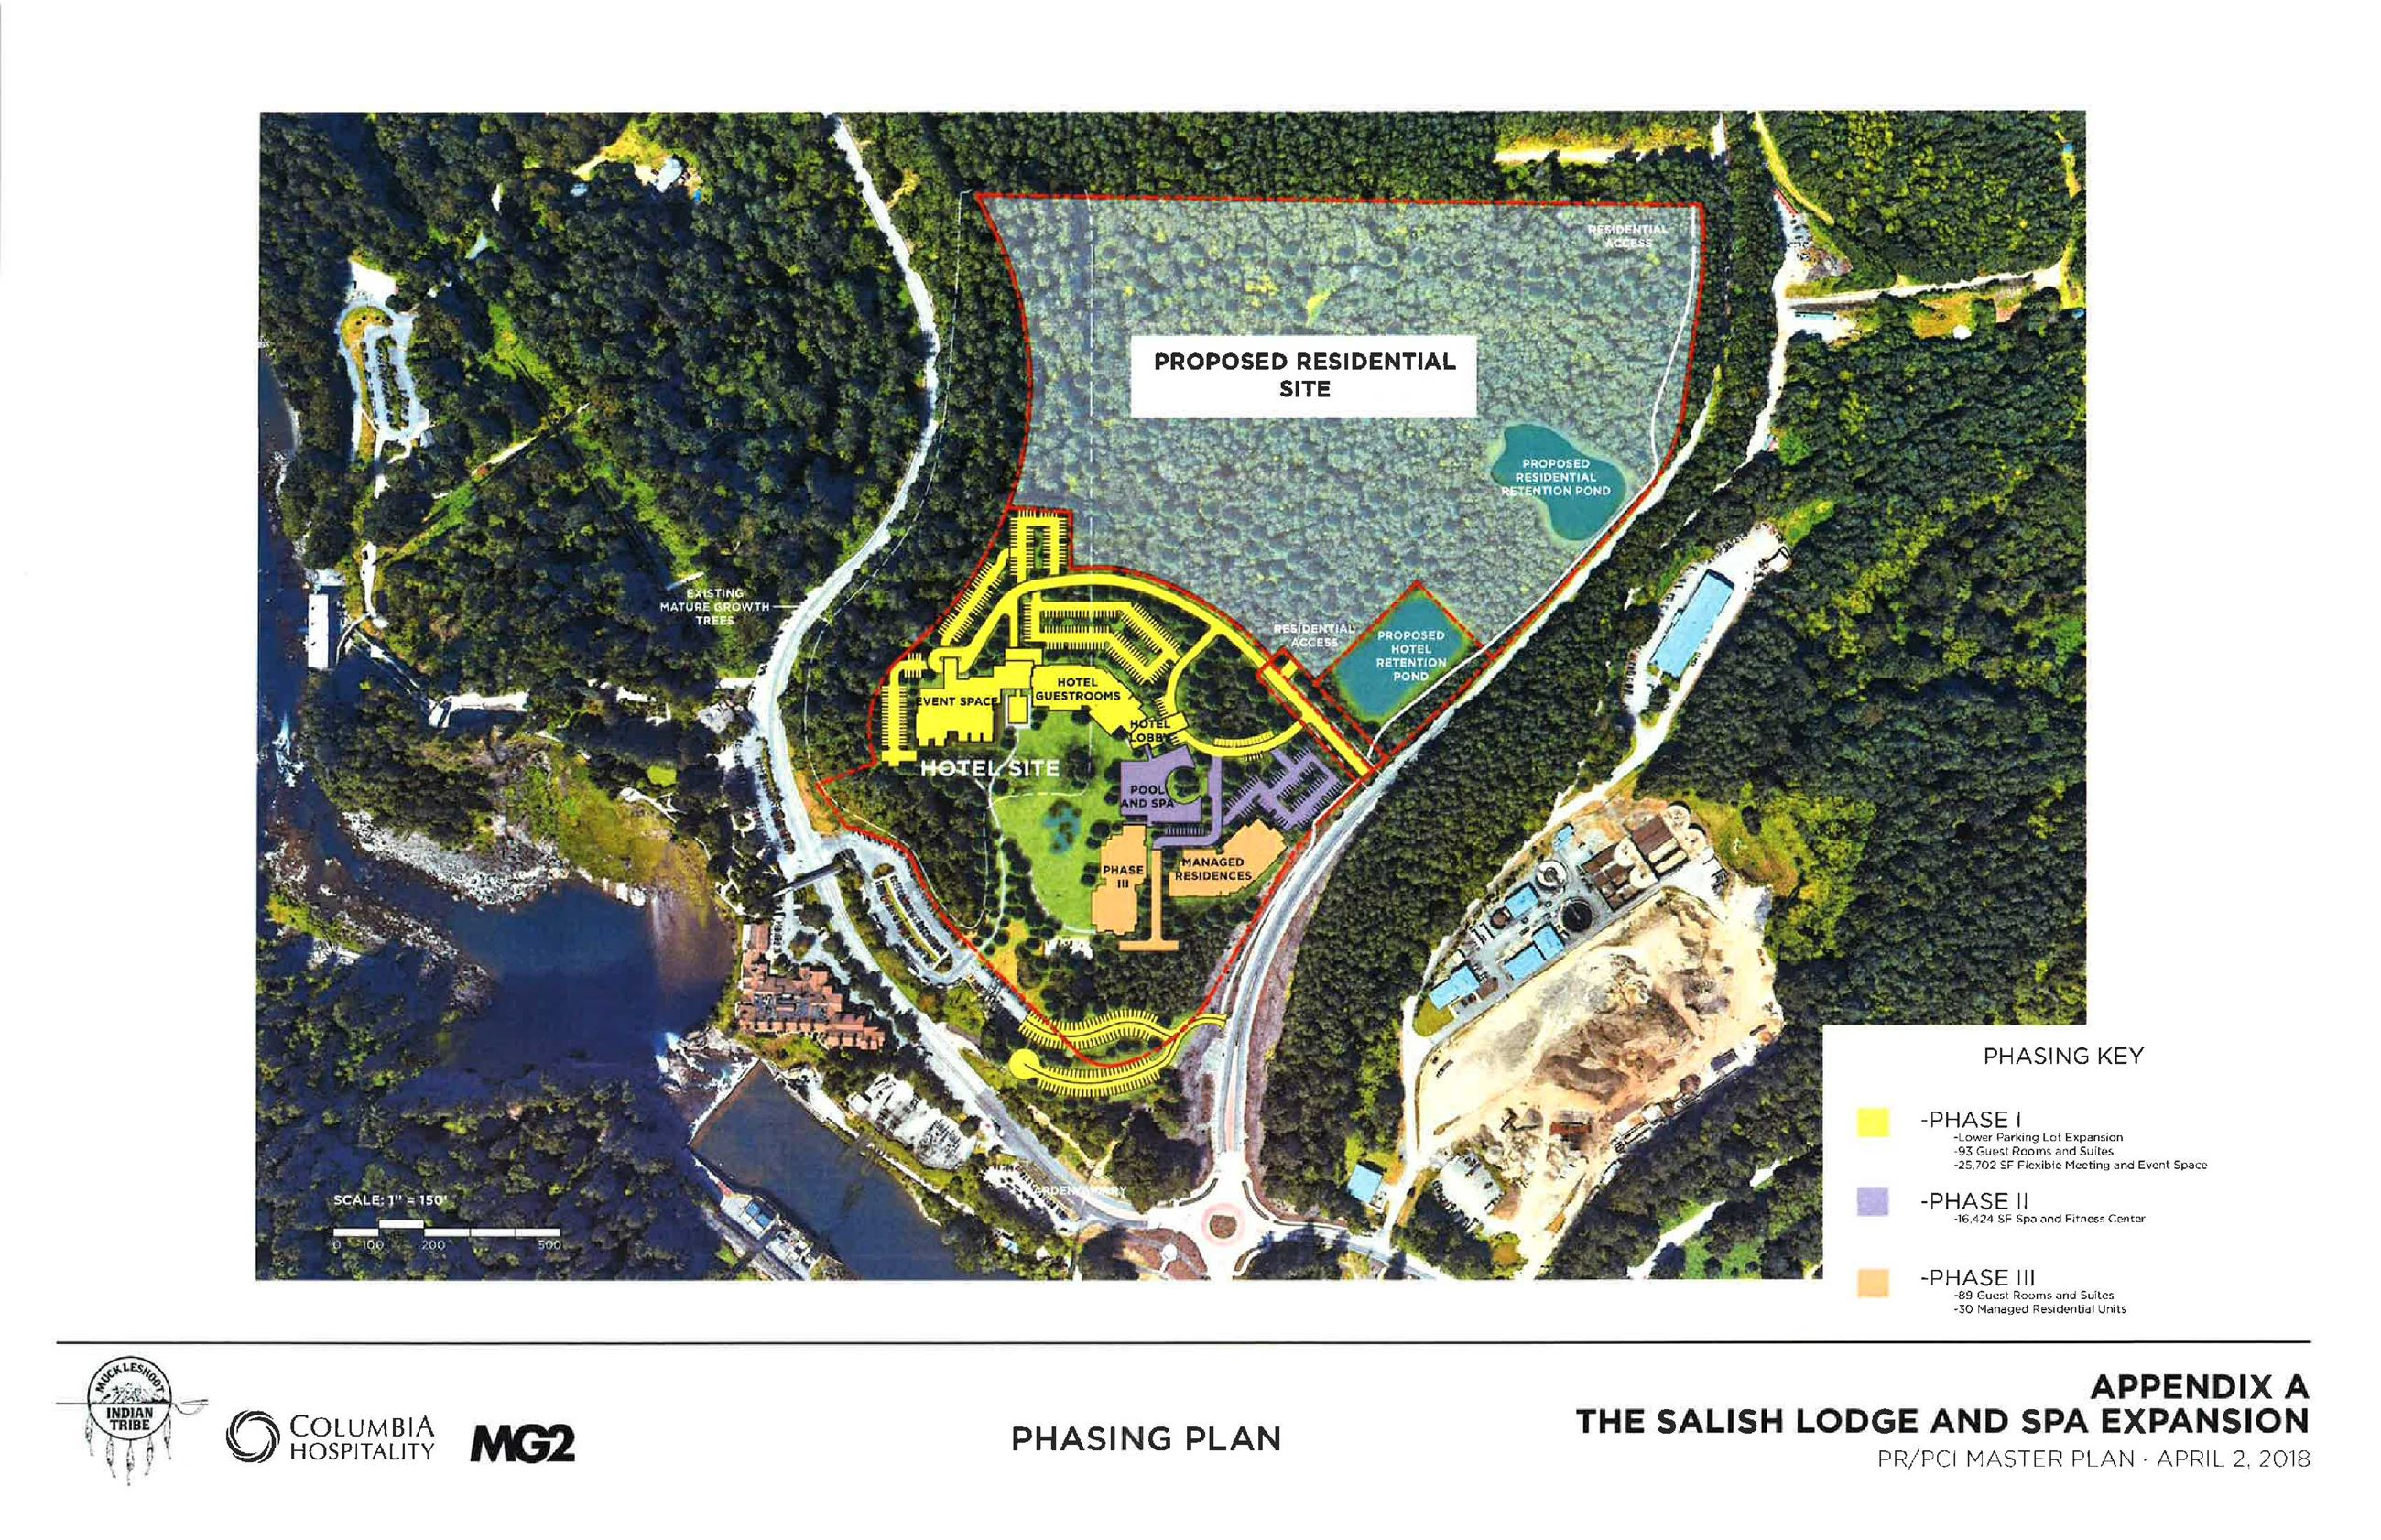 This is a conceptual aerial rendering showing phased planning stages of the Salish Lodge Expansion P